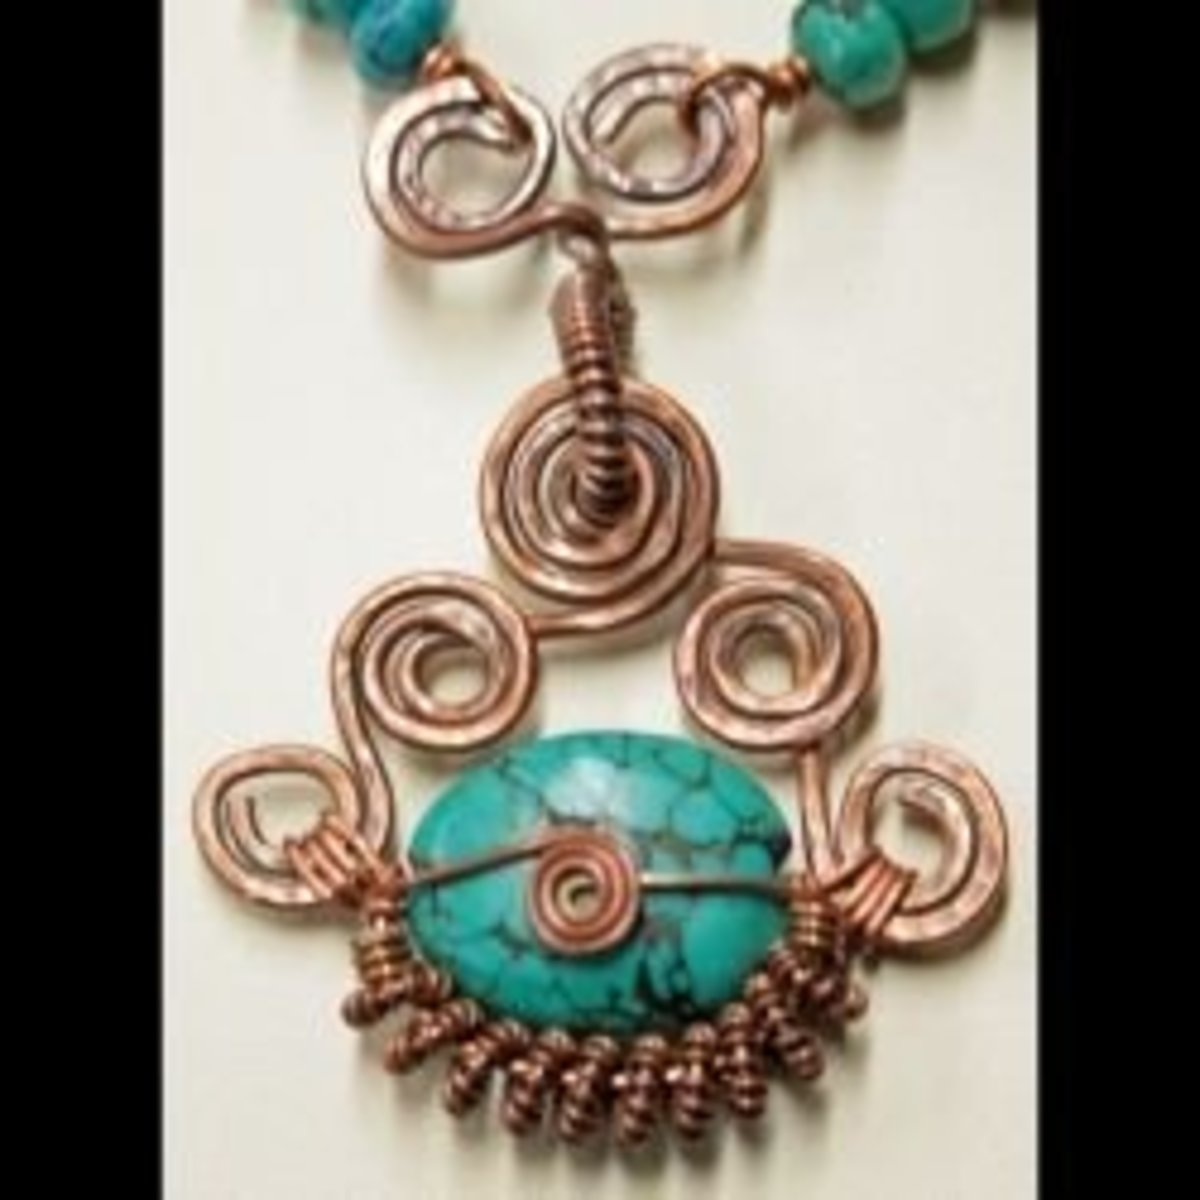 How to Oxidize Brass and Copper to That Gorgeous Brown Color